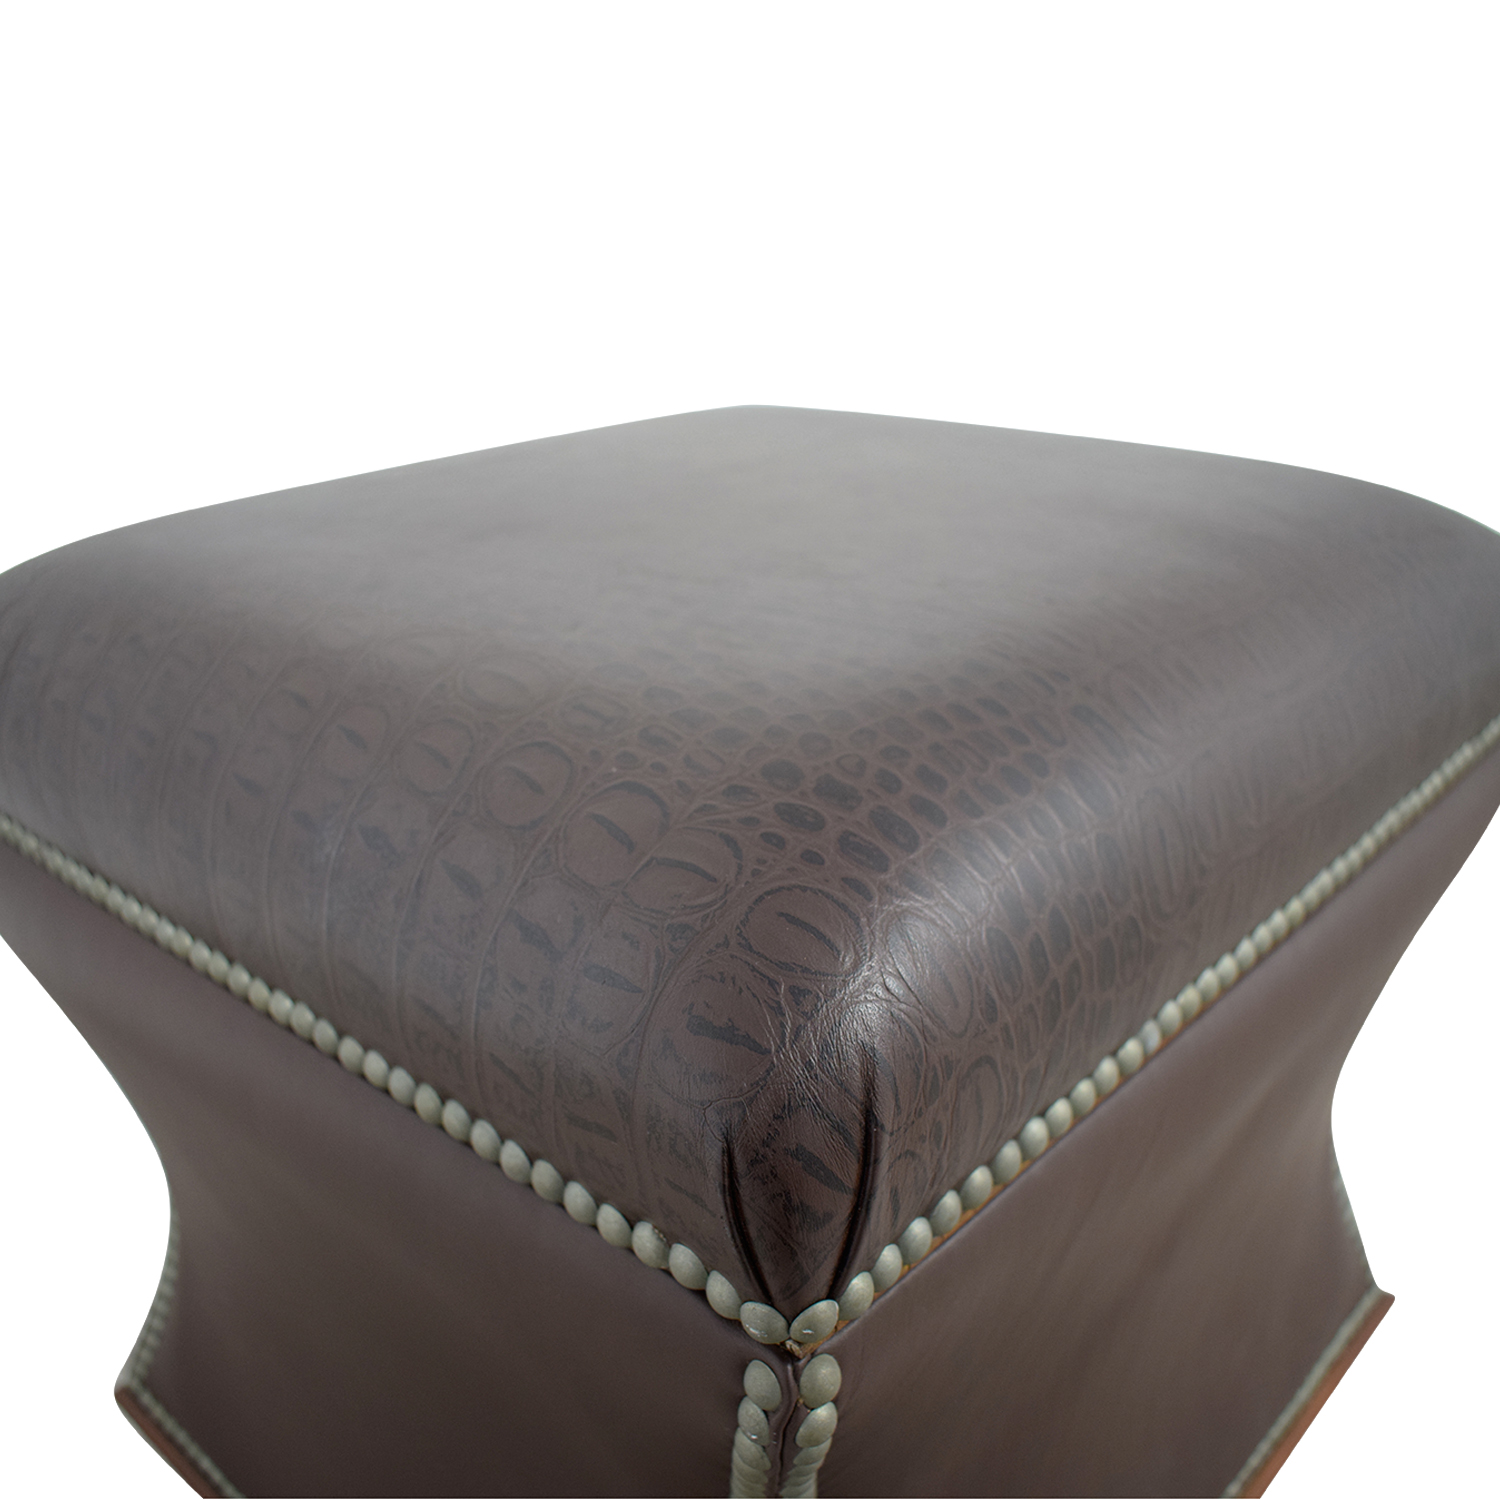 Fabulous 89 Off Ralph Lauren Home Ralph Lauren Nailhead Faux Crocodile Embossed Leather Storage Ottoman Chairs Ncnpc Chair Design For Home Ncnpcorg